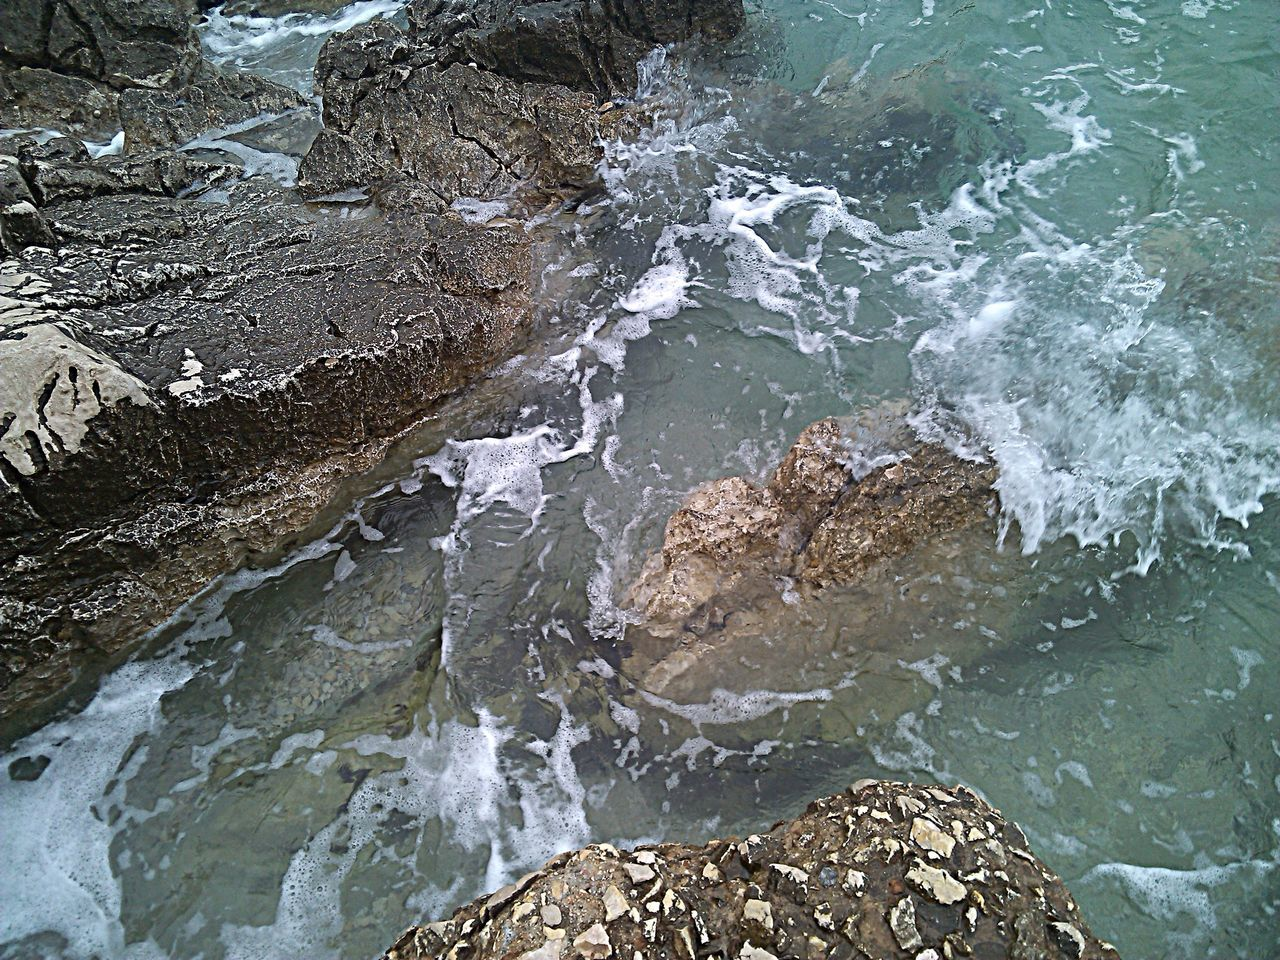 Beauty In Nature Close-up Crikvenica Croatia Day Flowing Water Idyllic Motion Nature Outdoors Rock - Object Sea Water Wave